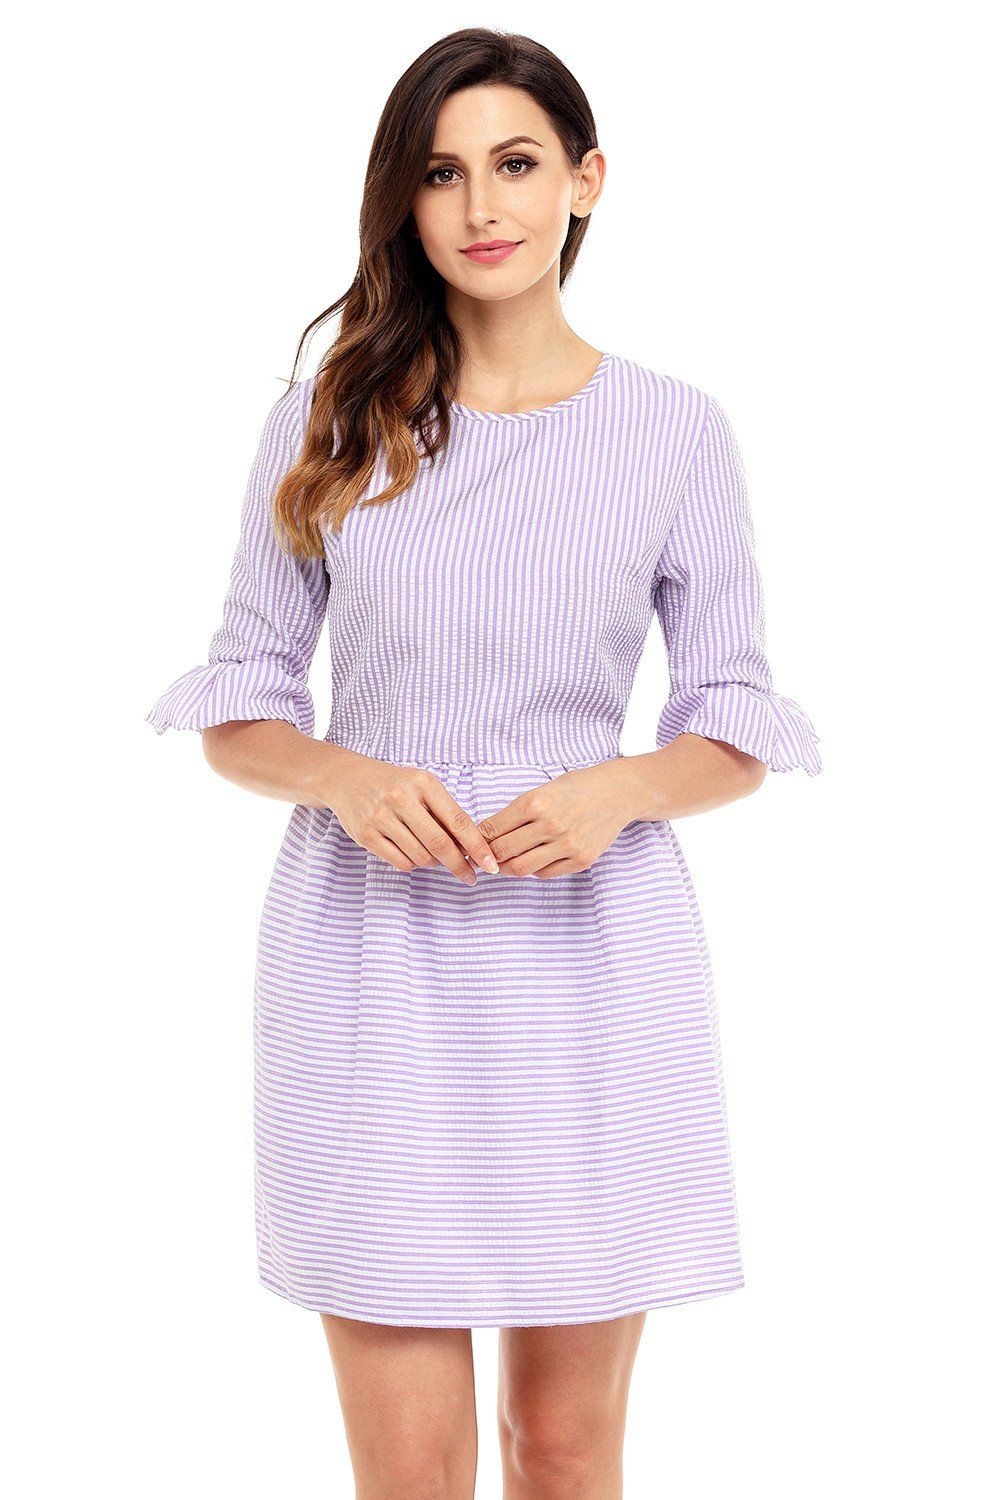 eeb0e243e76 Chic Purple White Stripe Flounce Sleeve Seersucker Dress ...